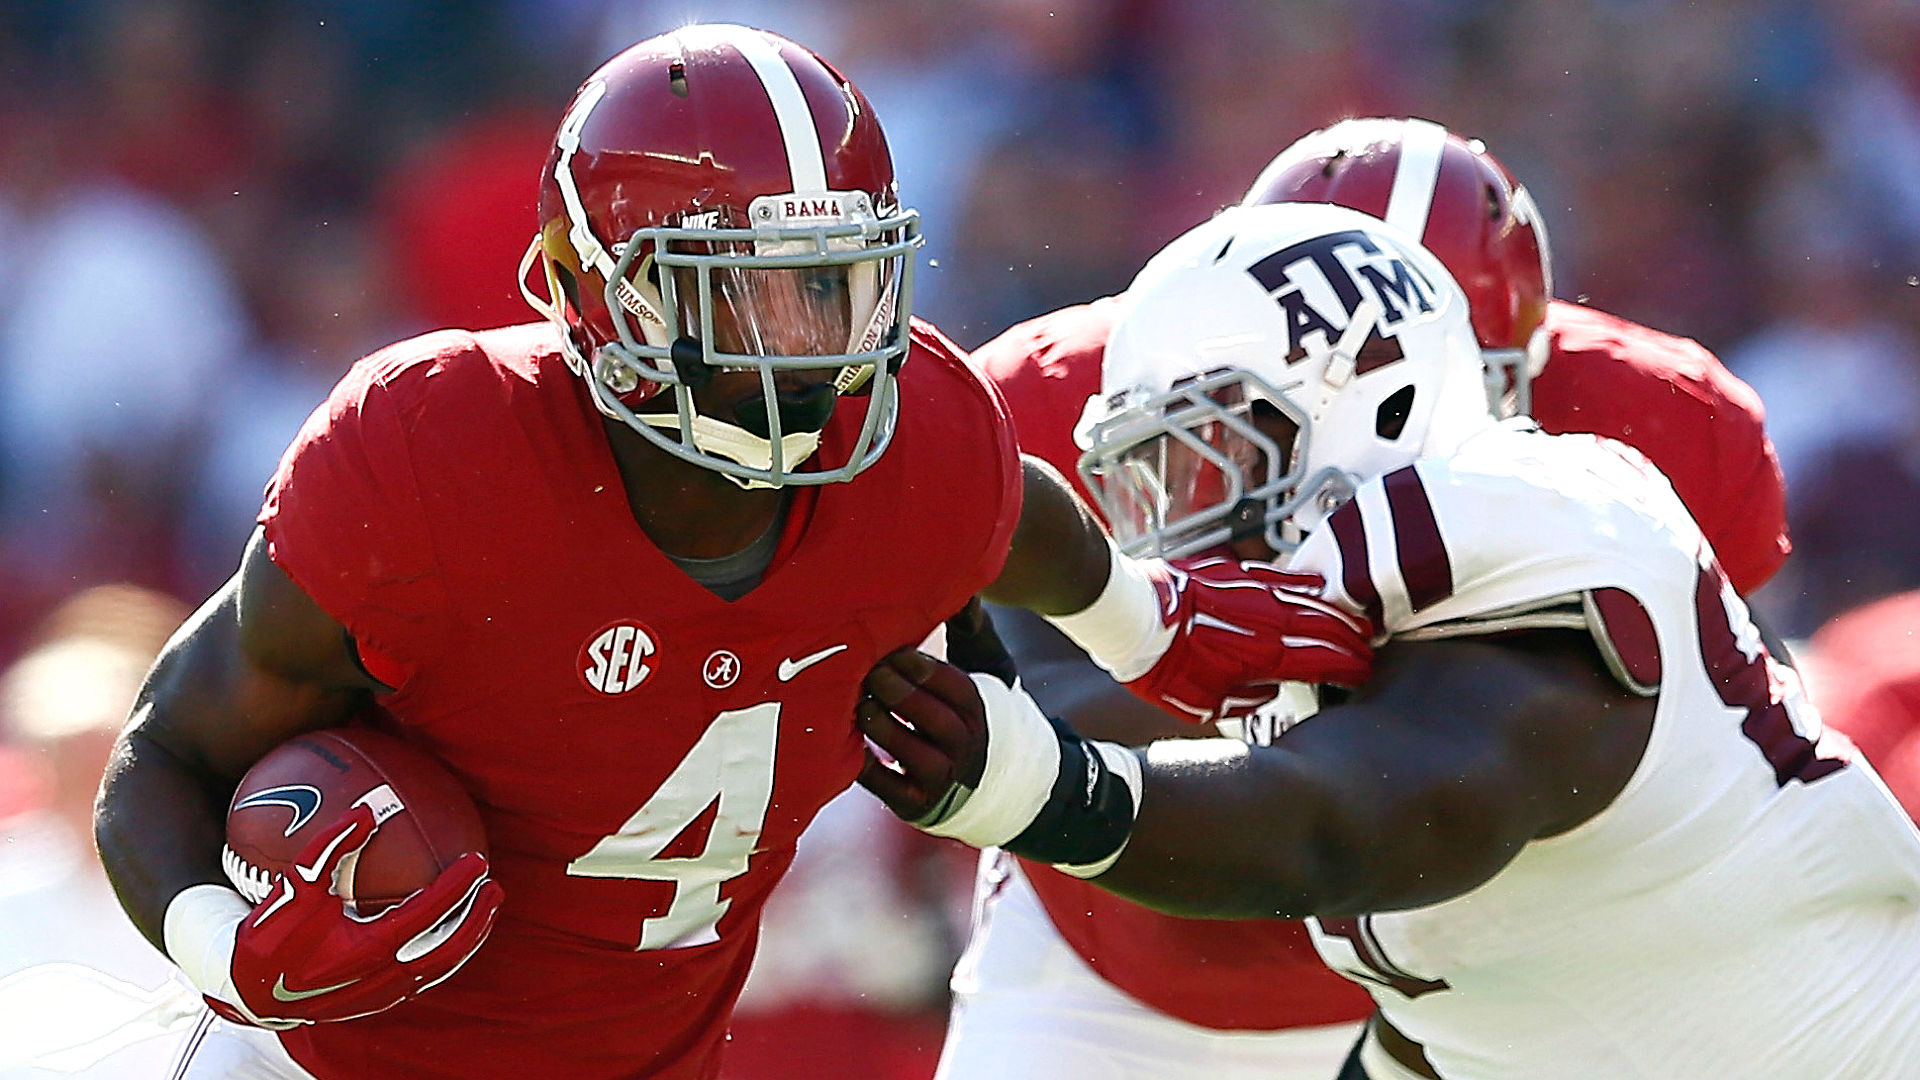 College football lines and leans – Your Week 11 betting guide